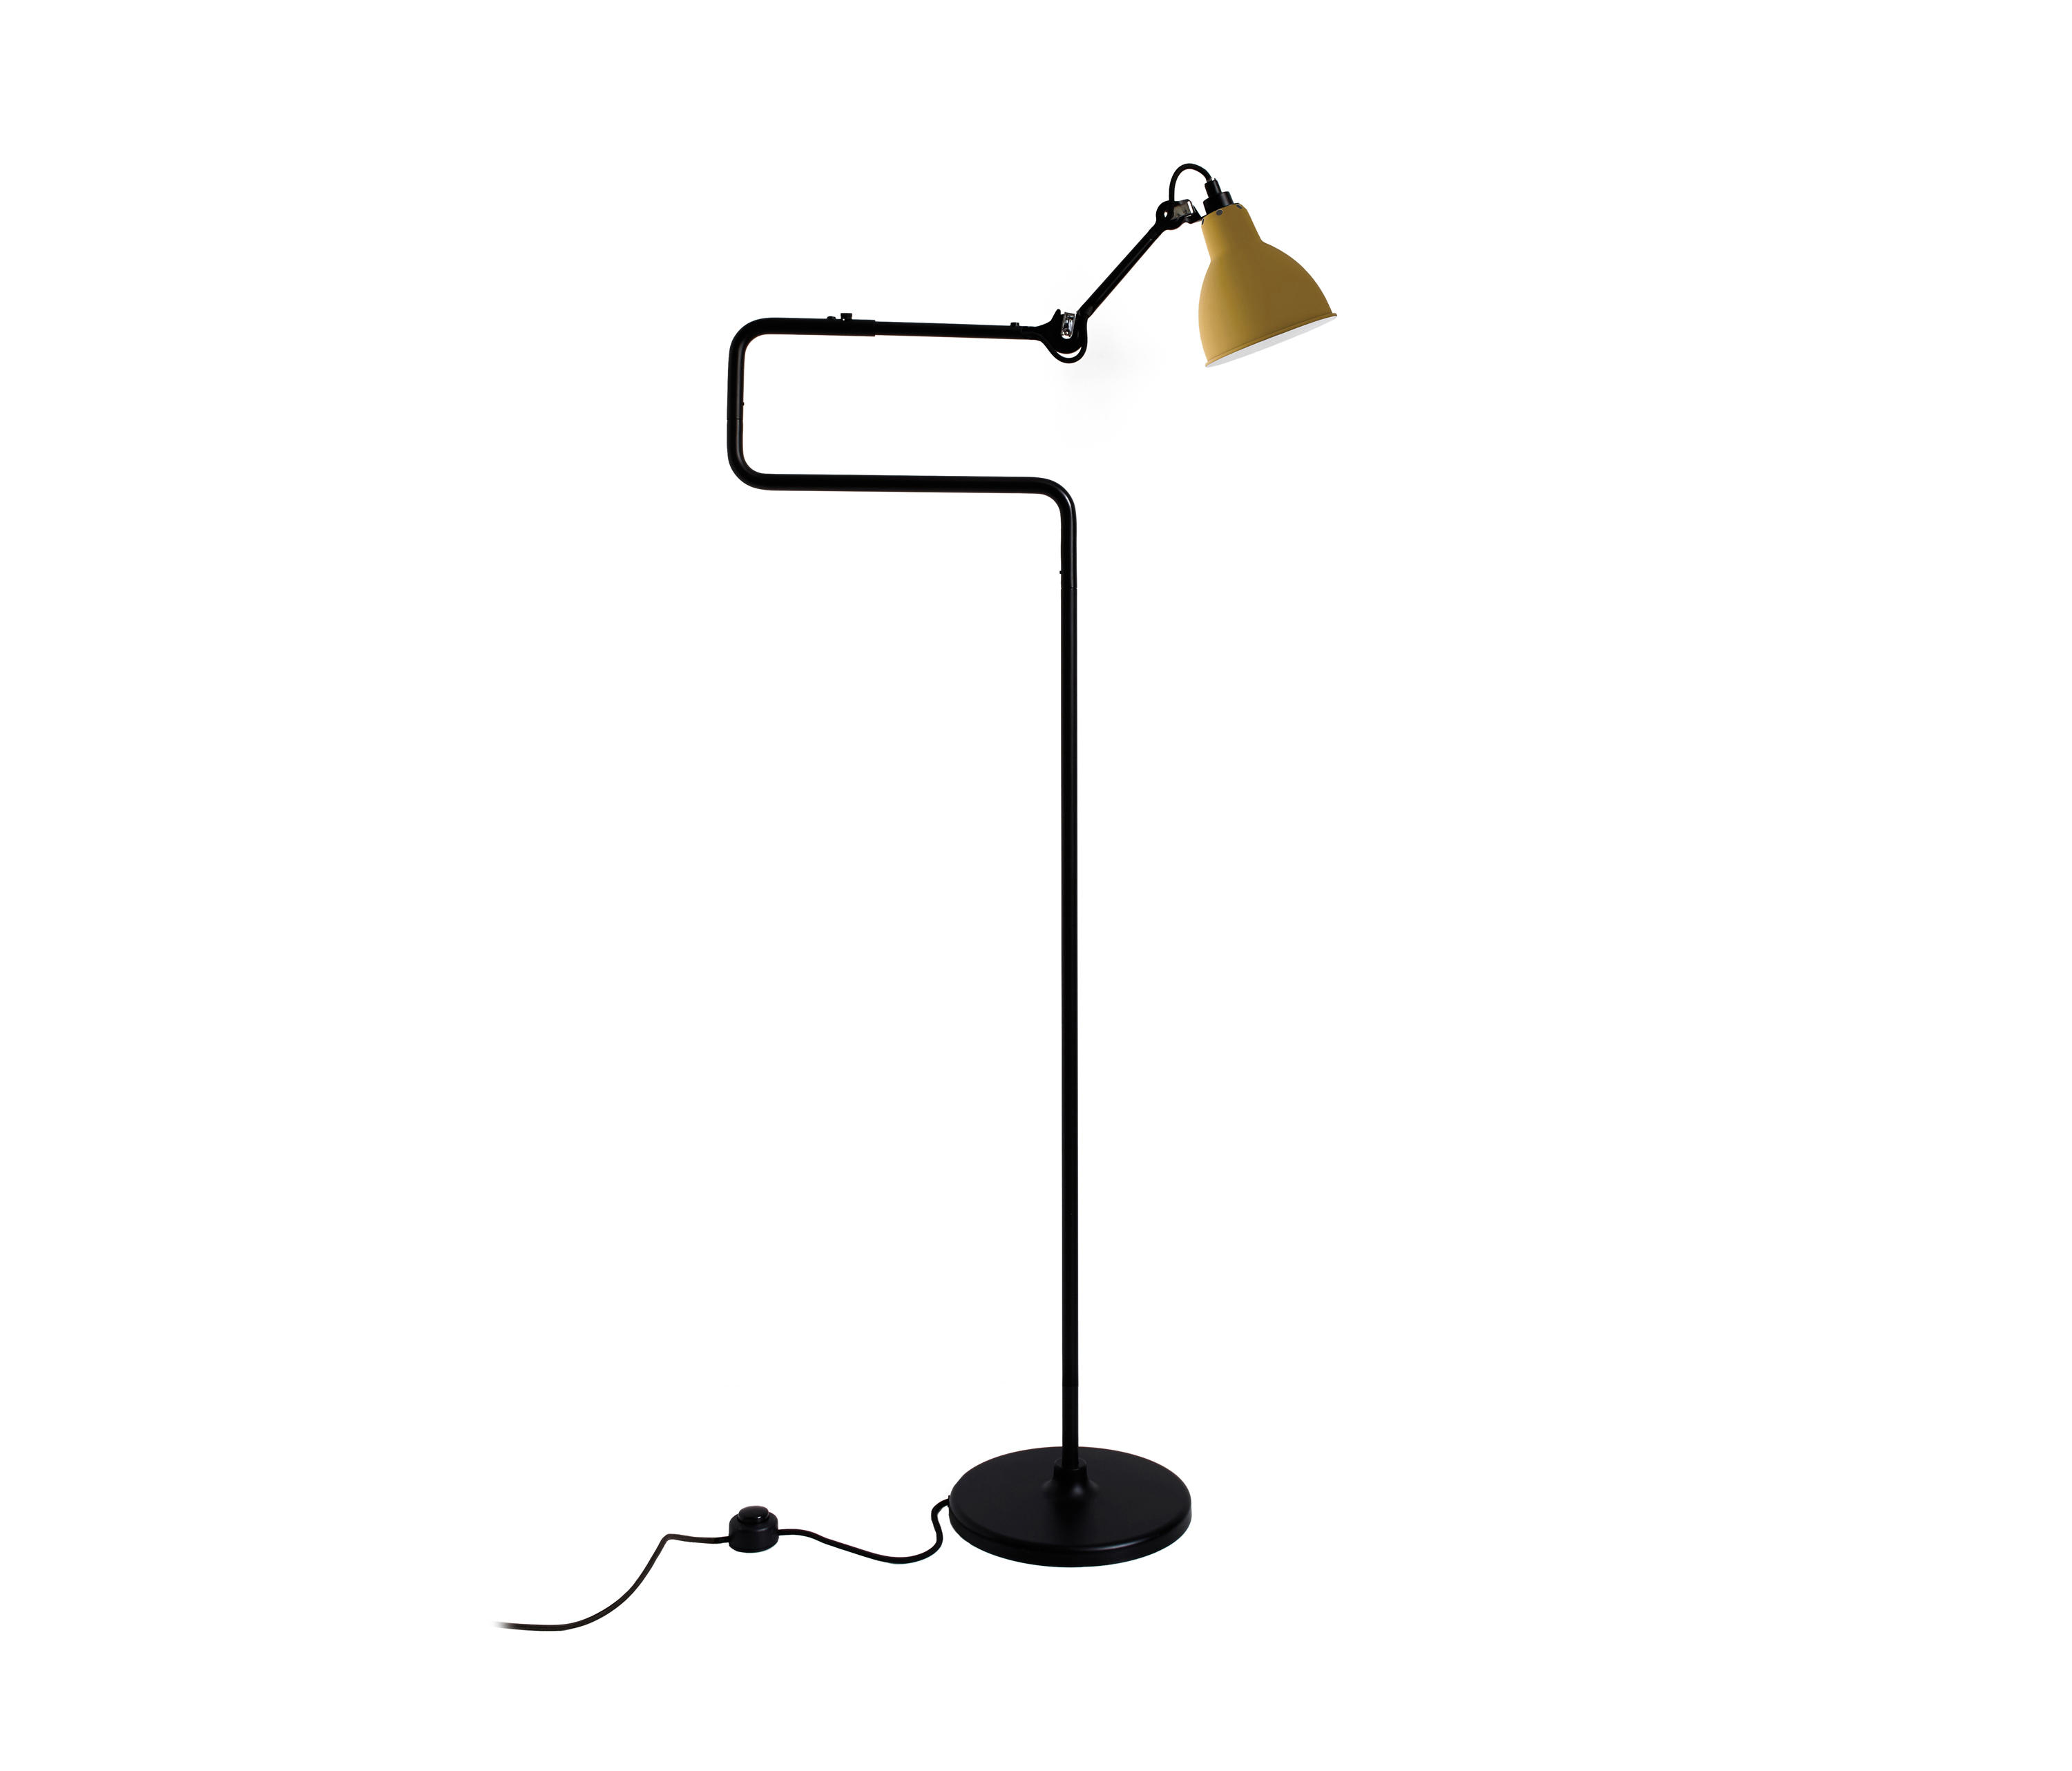 lampe gras n 411 yellow clairage g n ral de dcw ditions architonic. Black Bedroom Furniture Sets. Home Design Ideas